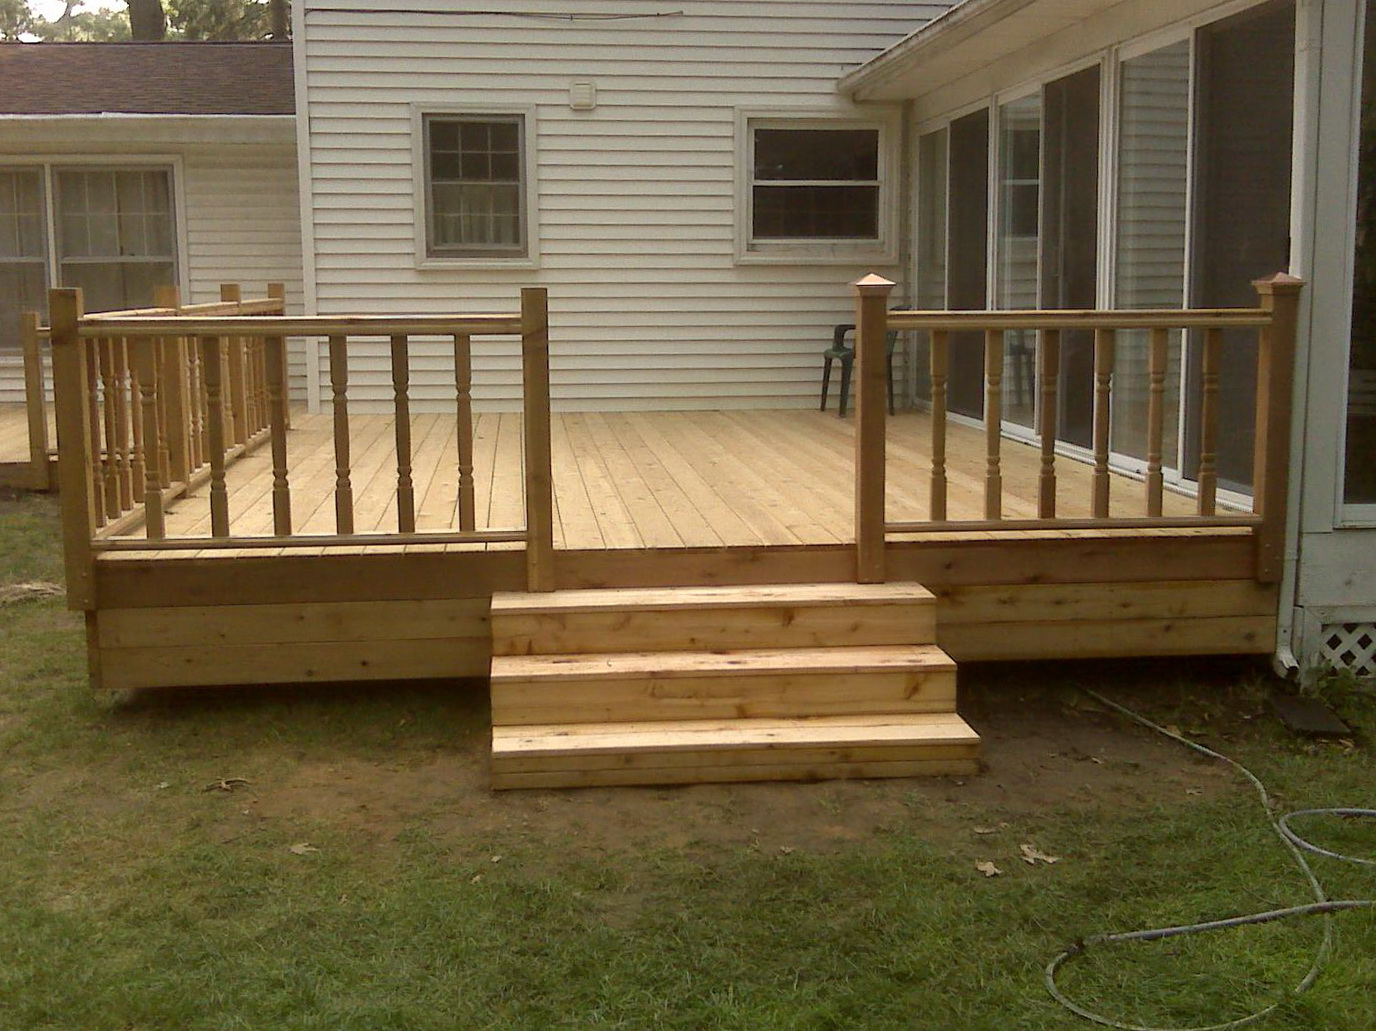 Basic deck plans free home design ideas Wood deck designs free